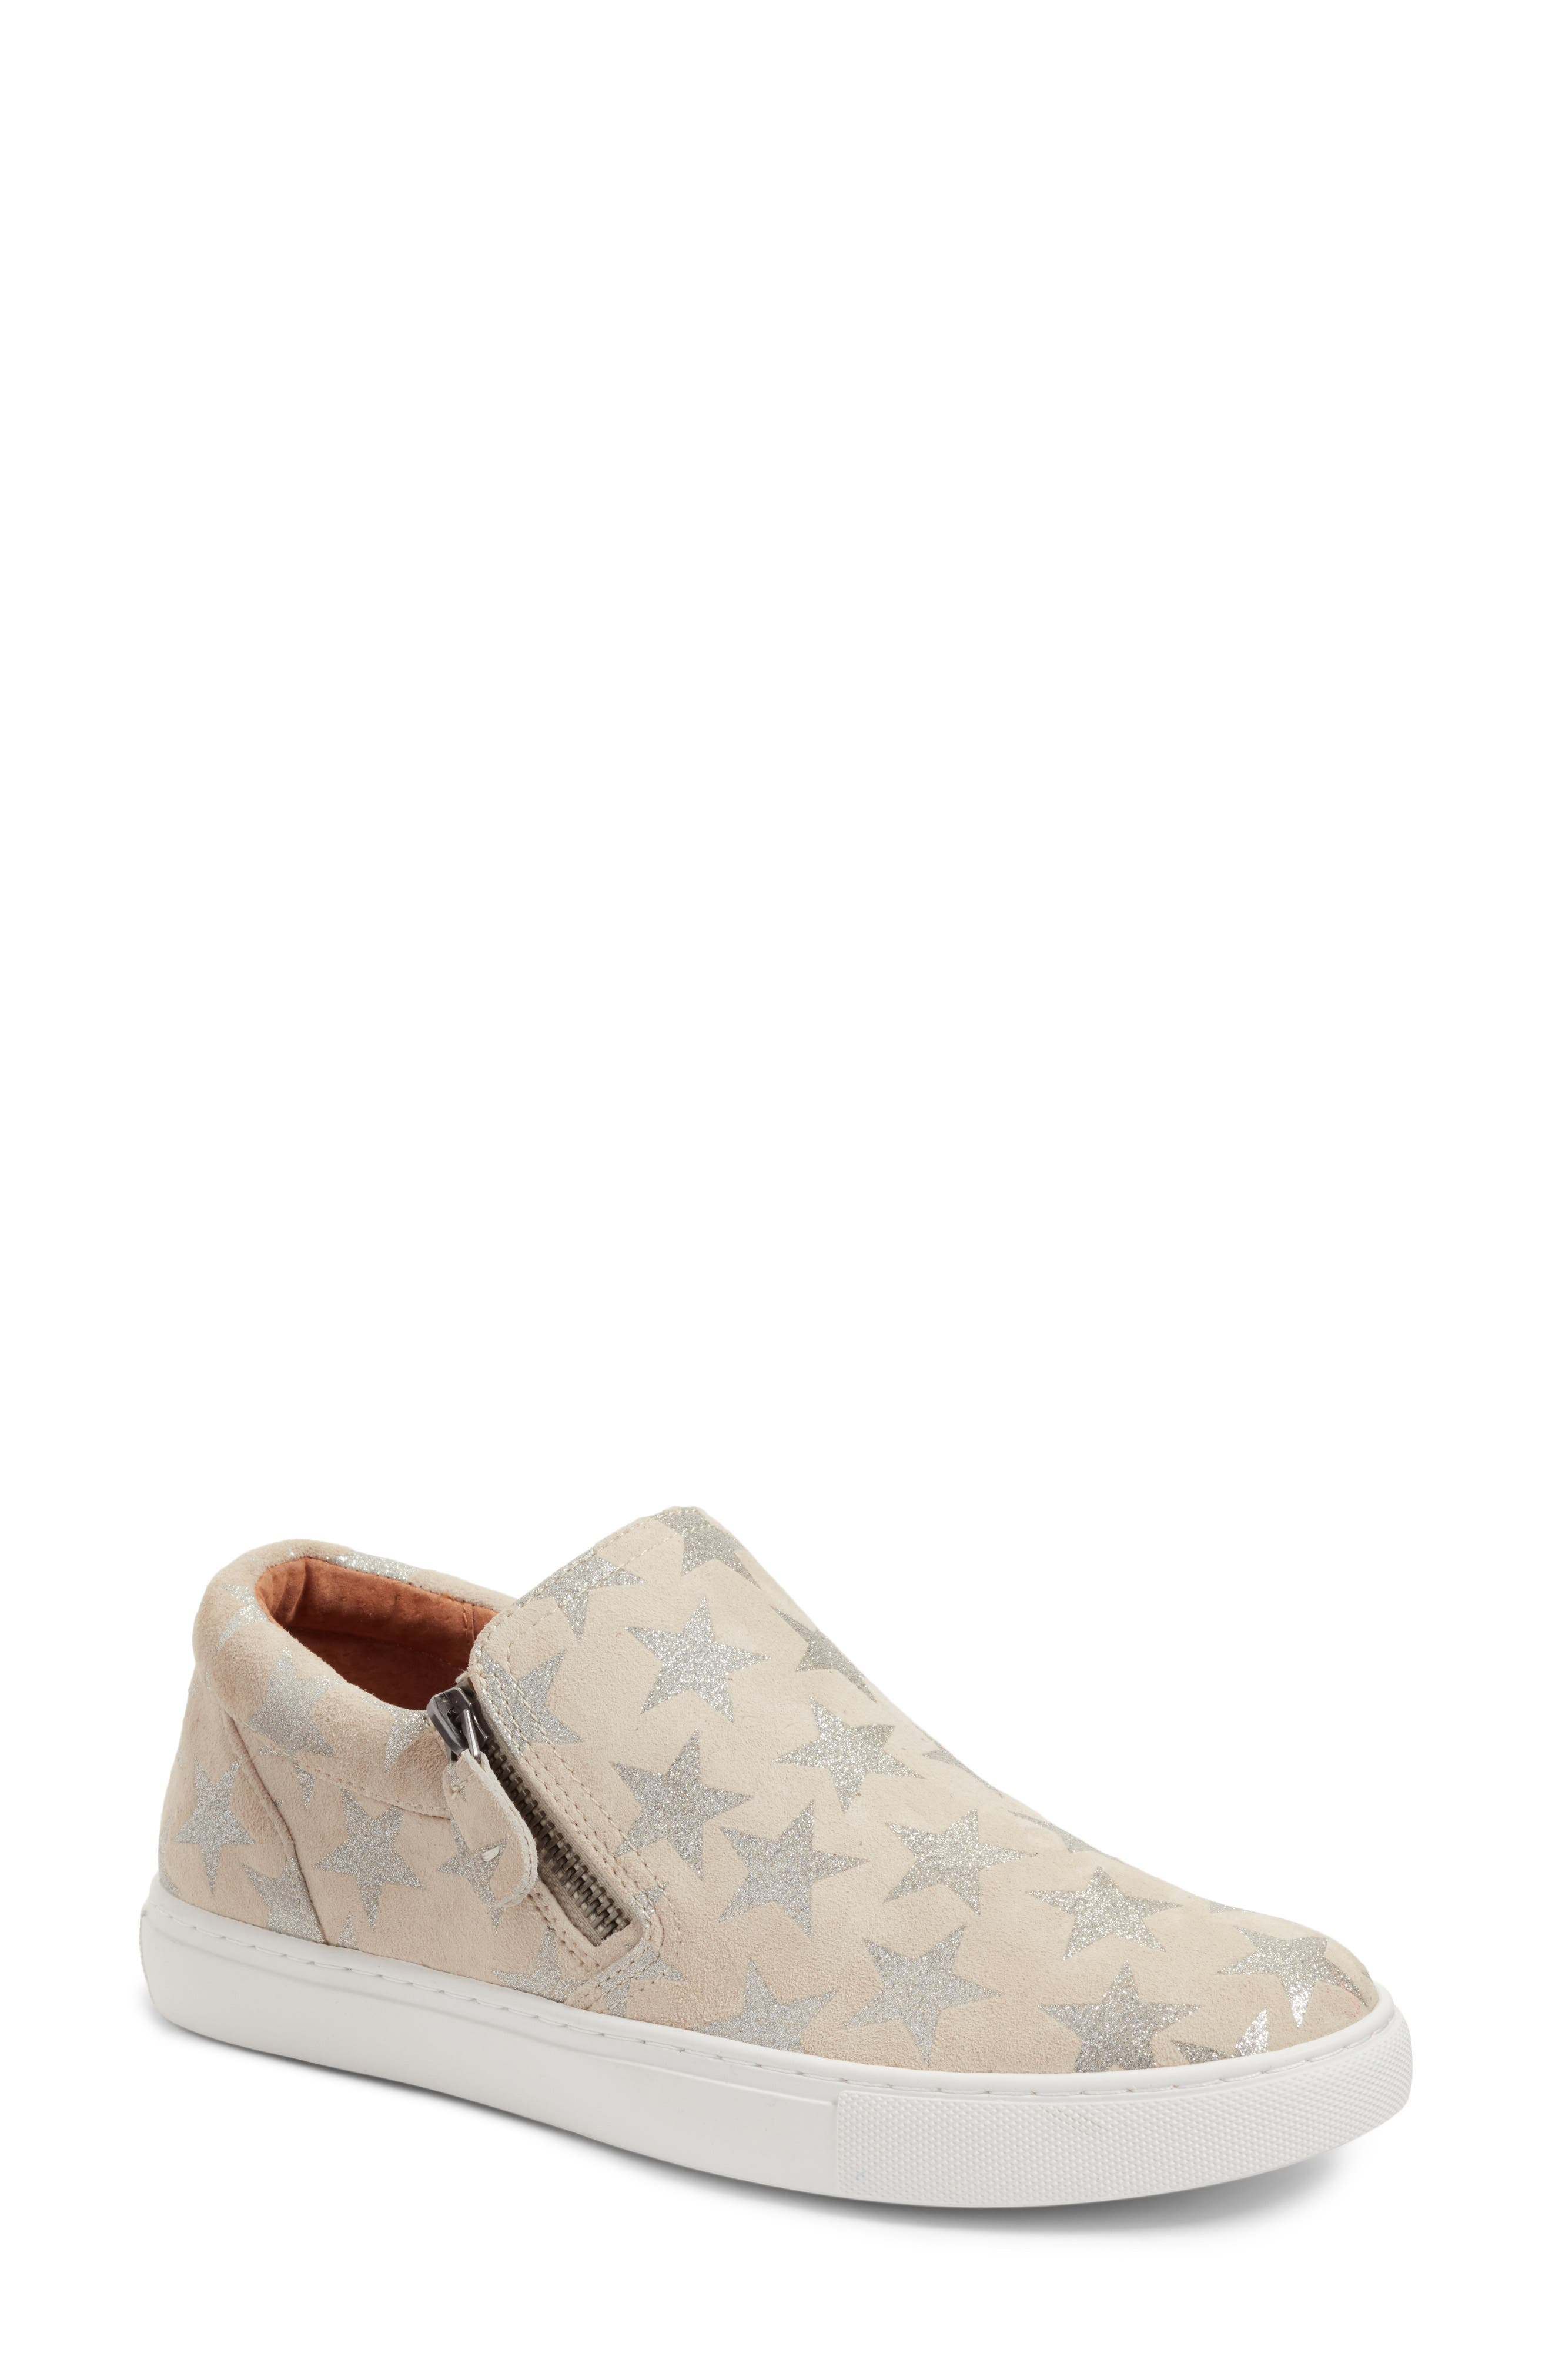 by Kenneth Cole Lowe Sneaker,                             Main thumbnail 1, color,                             Off White Suede